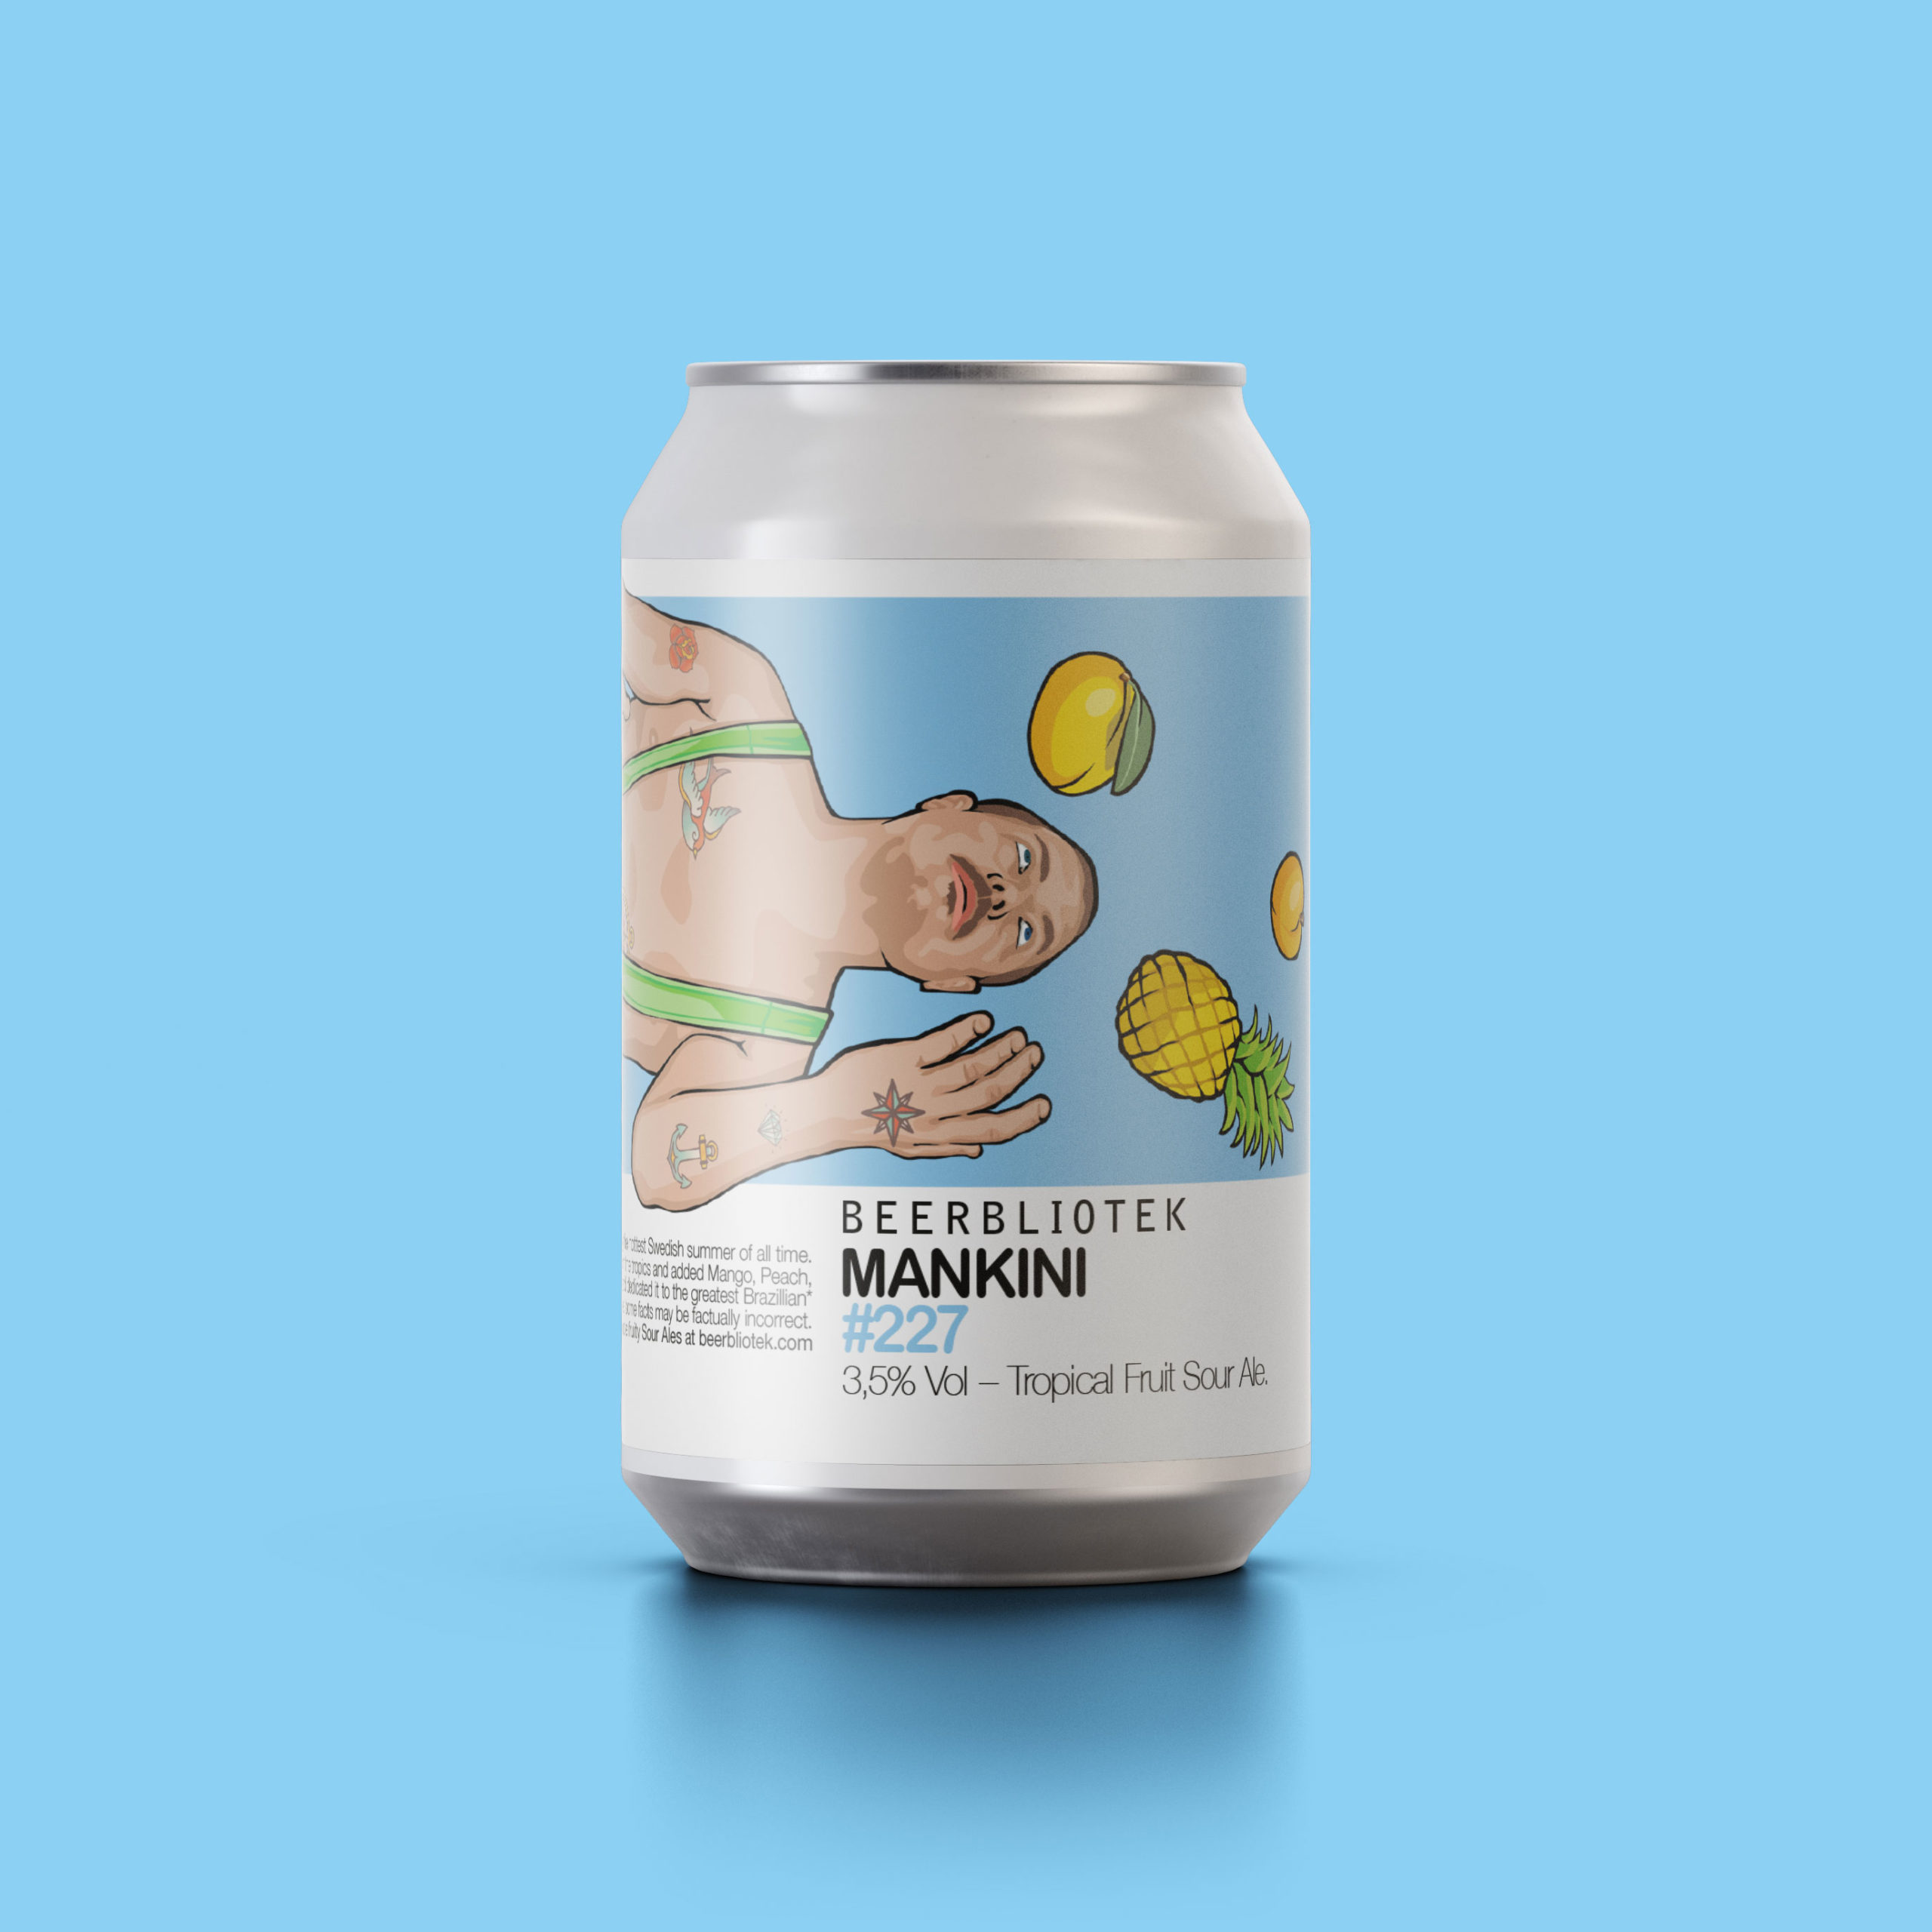 A can packshot of Mankini Tropical Fruit Sour Ale, brewed by Swedish Craft Brewery Beerbliotek.